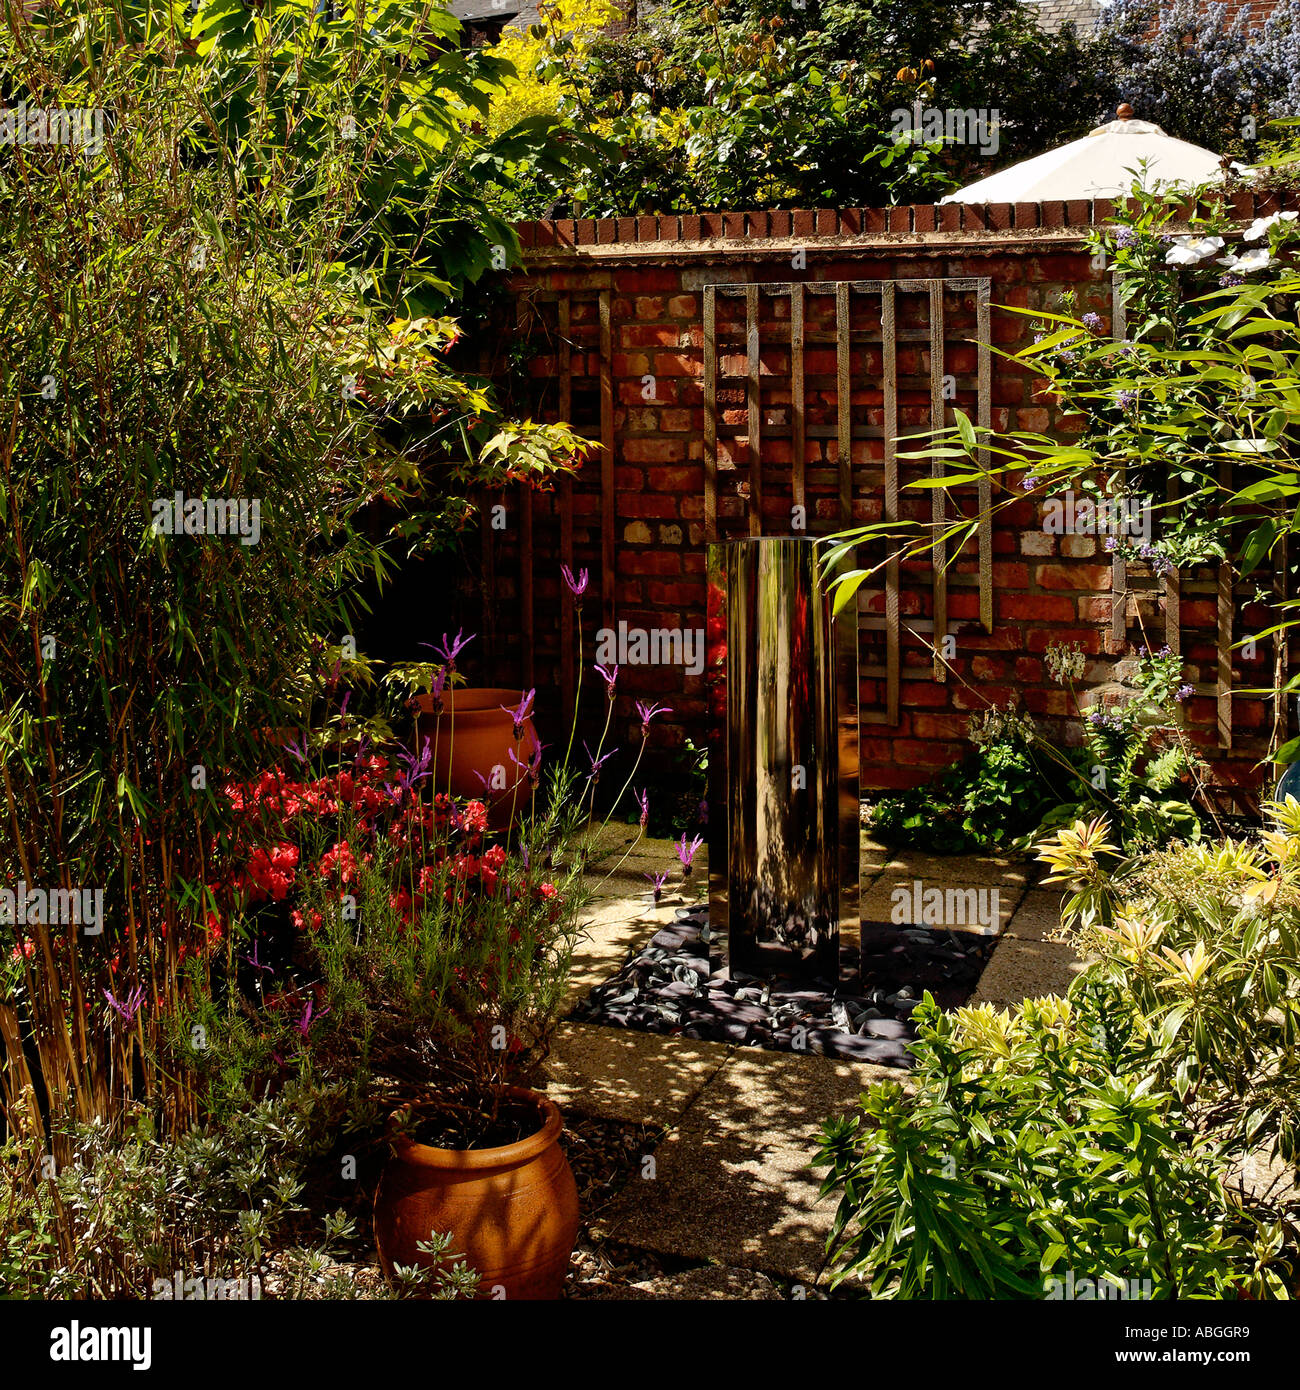 Dappled light in a contemporary patio garden - Stock Image